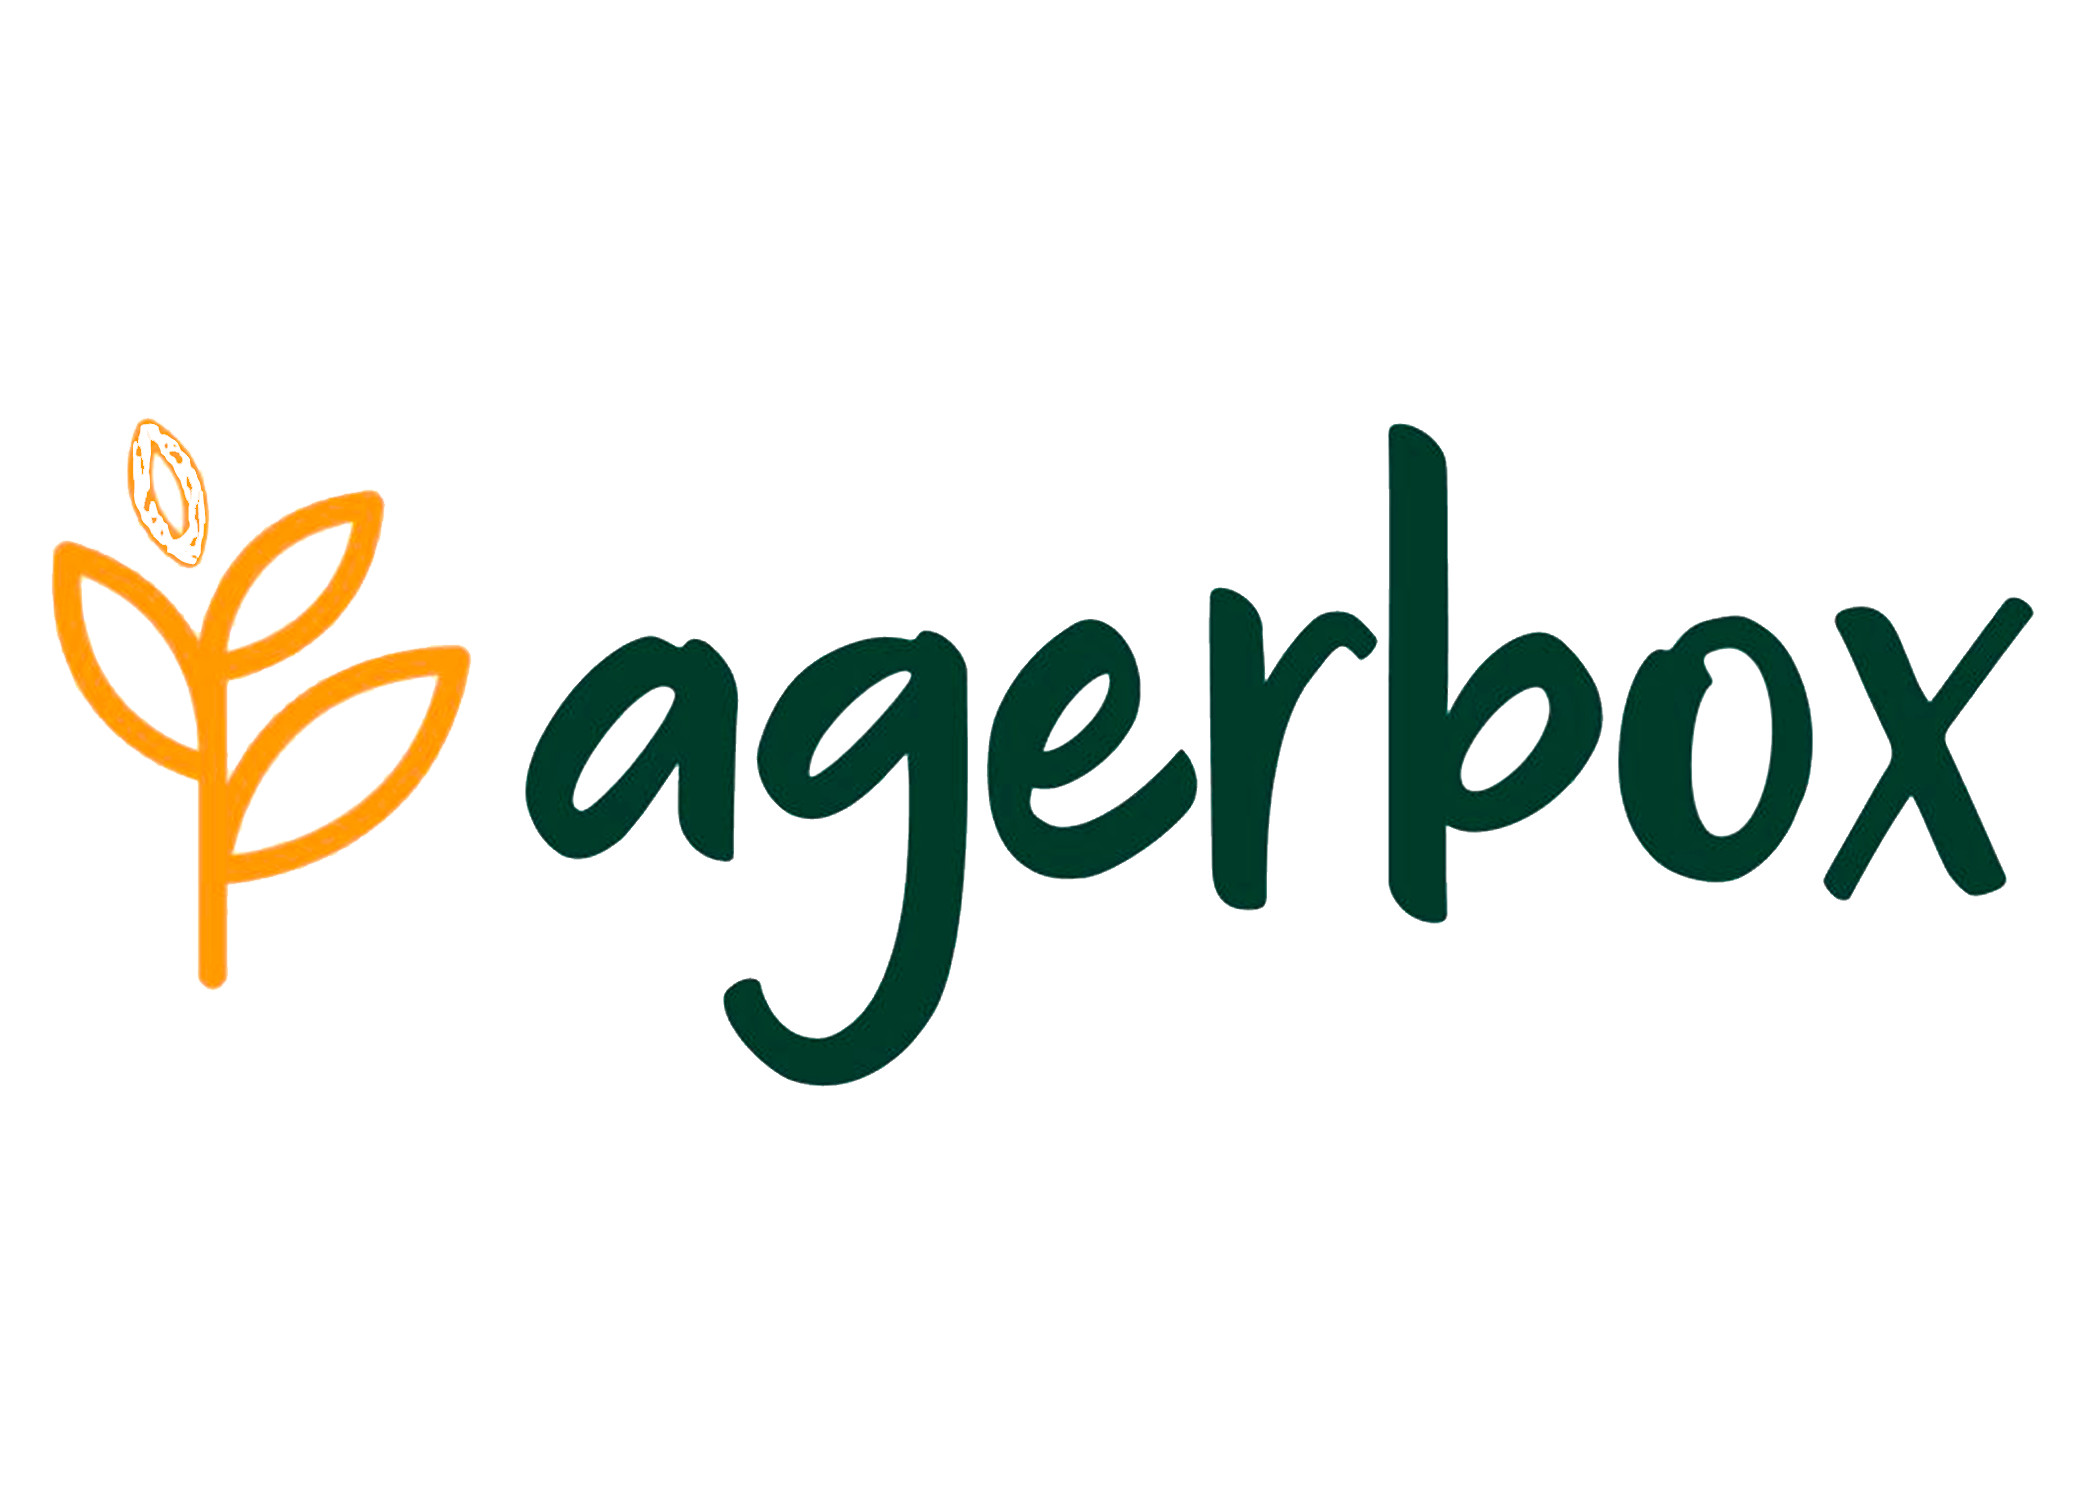 Agerbox